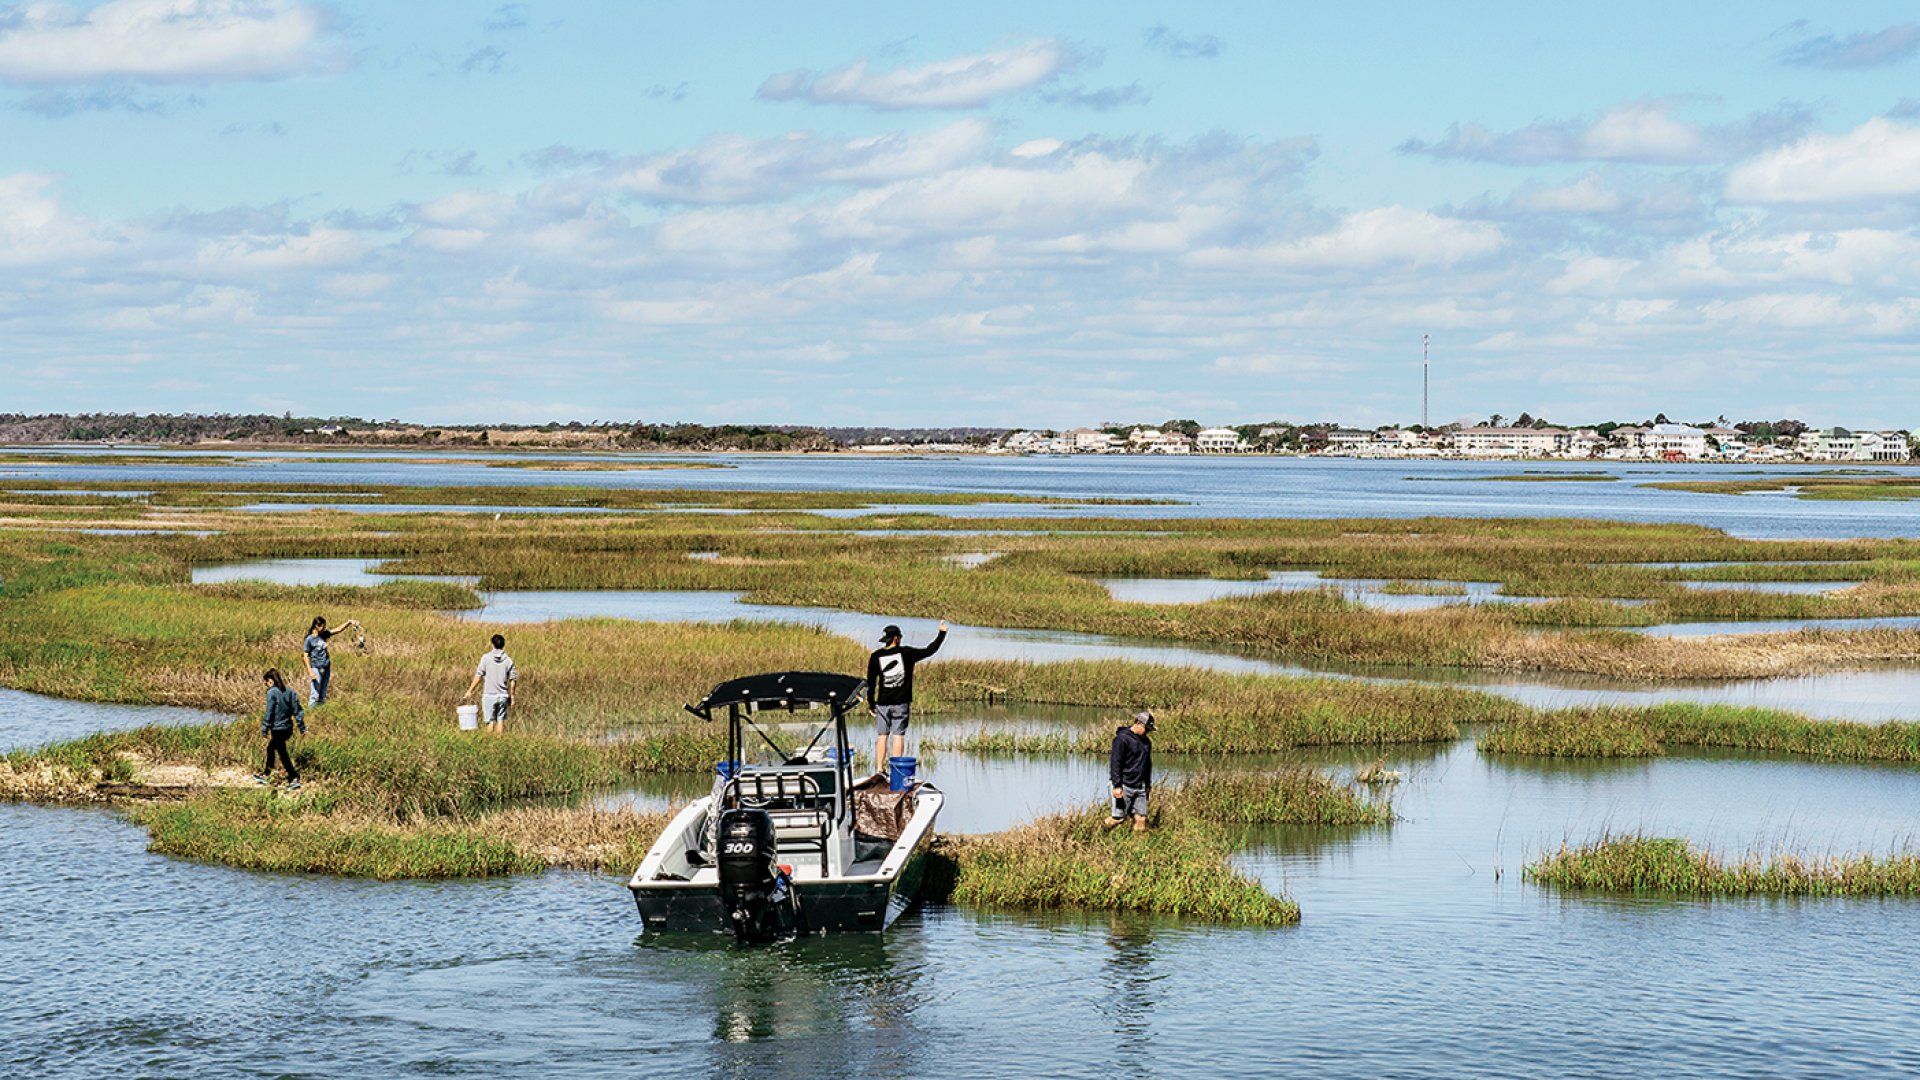 On Bogue Sound, which separates the barrier island from the mainland, Transportation Impact employees patrol tidal grasses for debris to haul away.